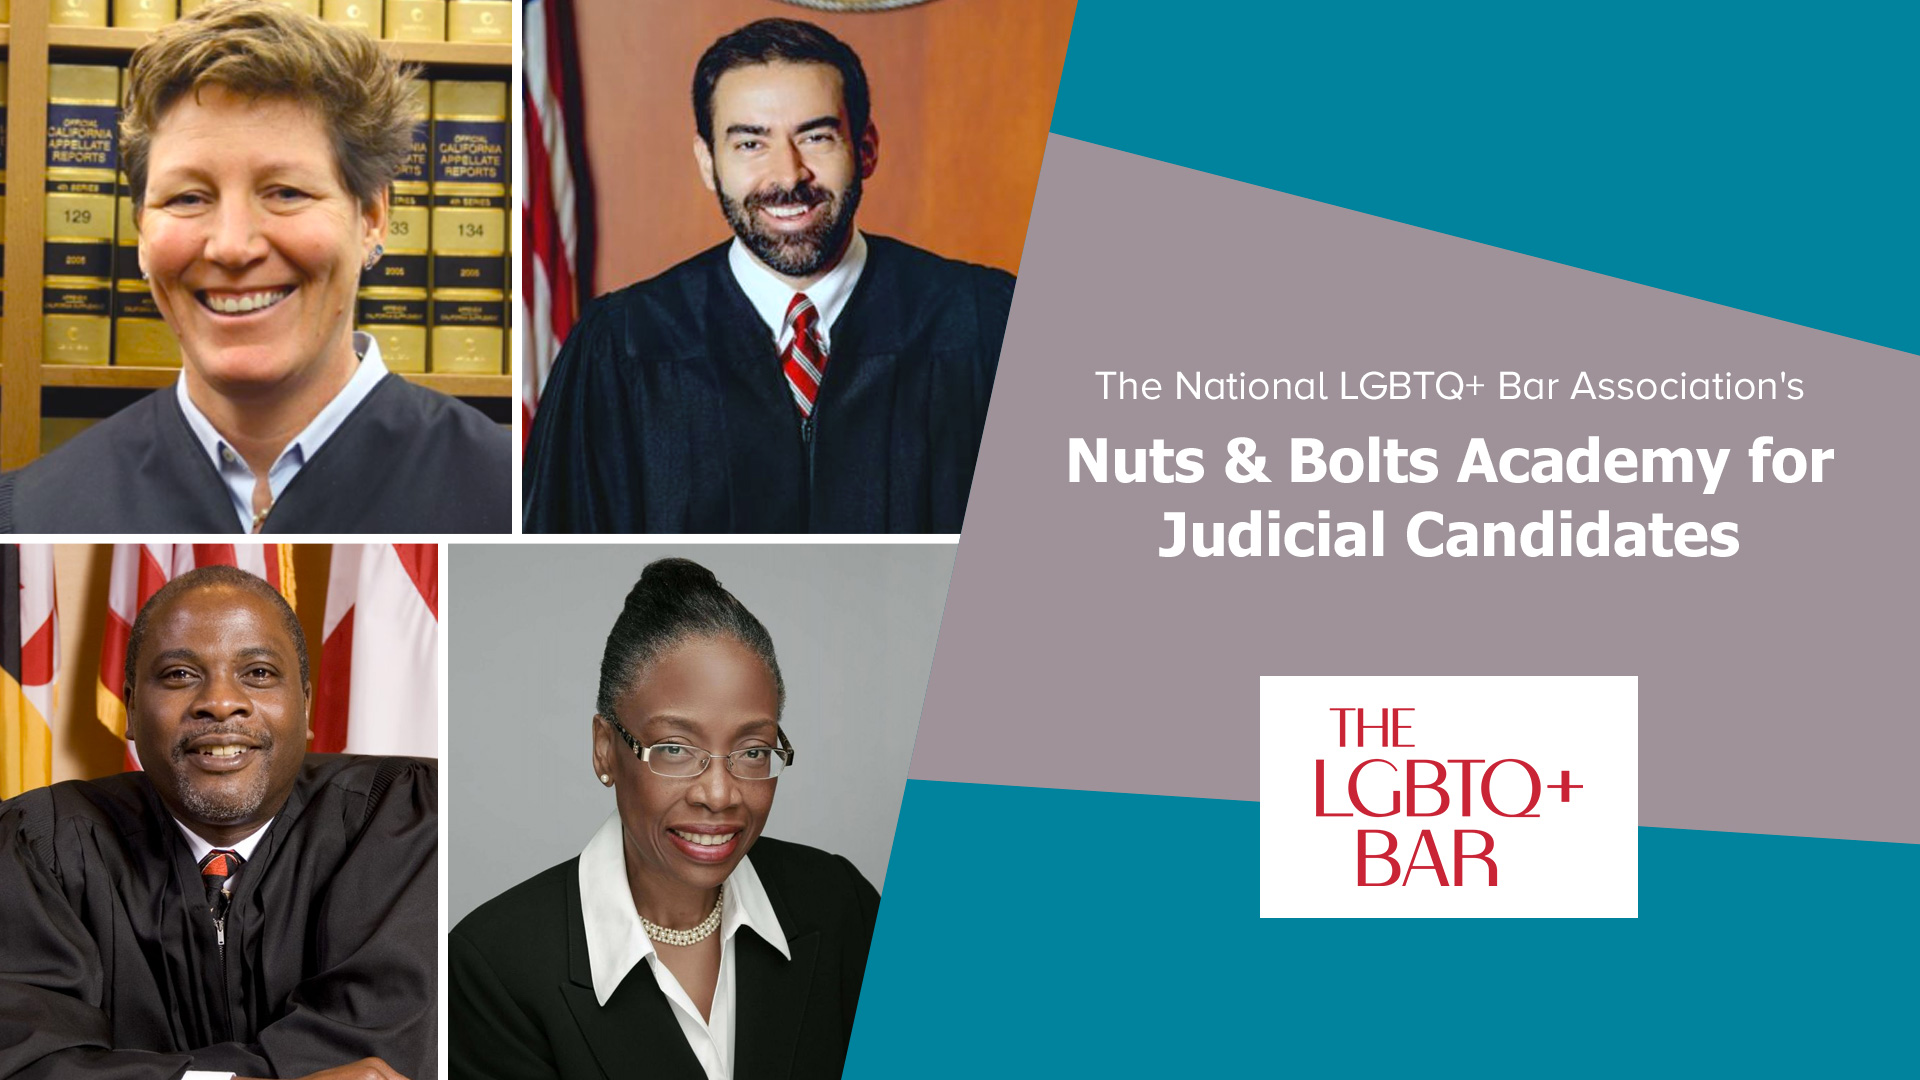 """The LGBTQ+ Bar's """"Nuts & Bolts Academy for Judicial Candidates"""""""